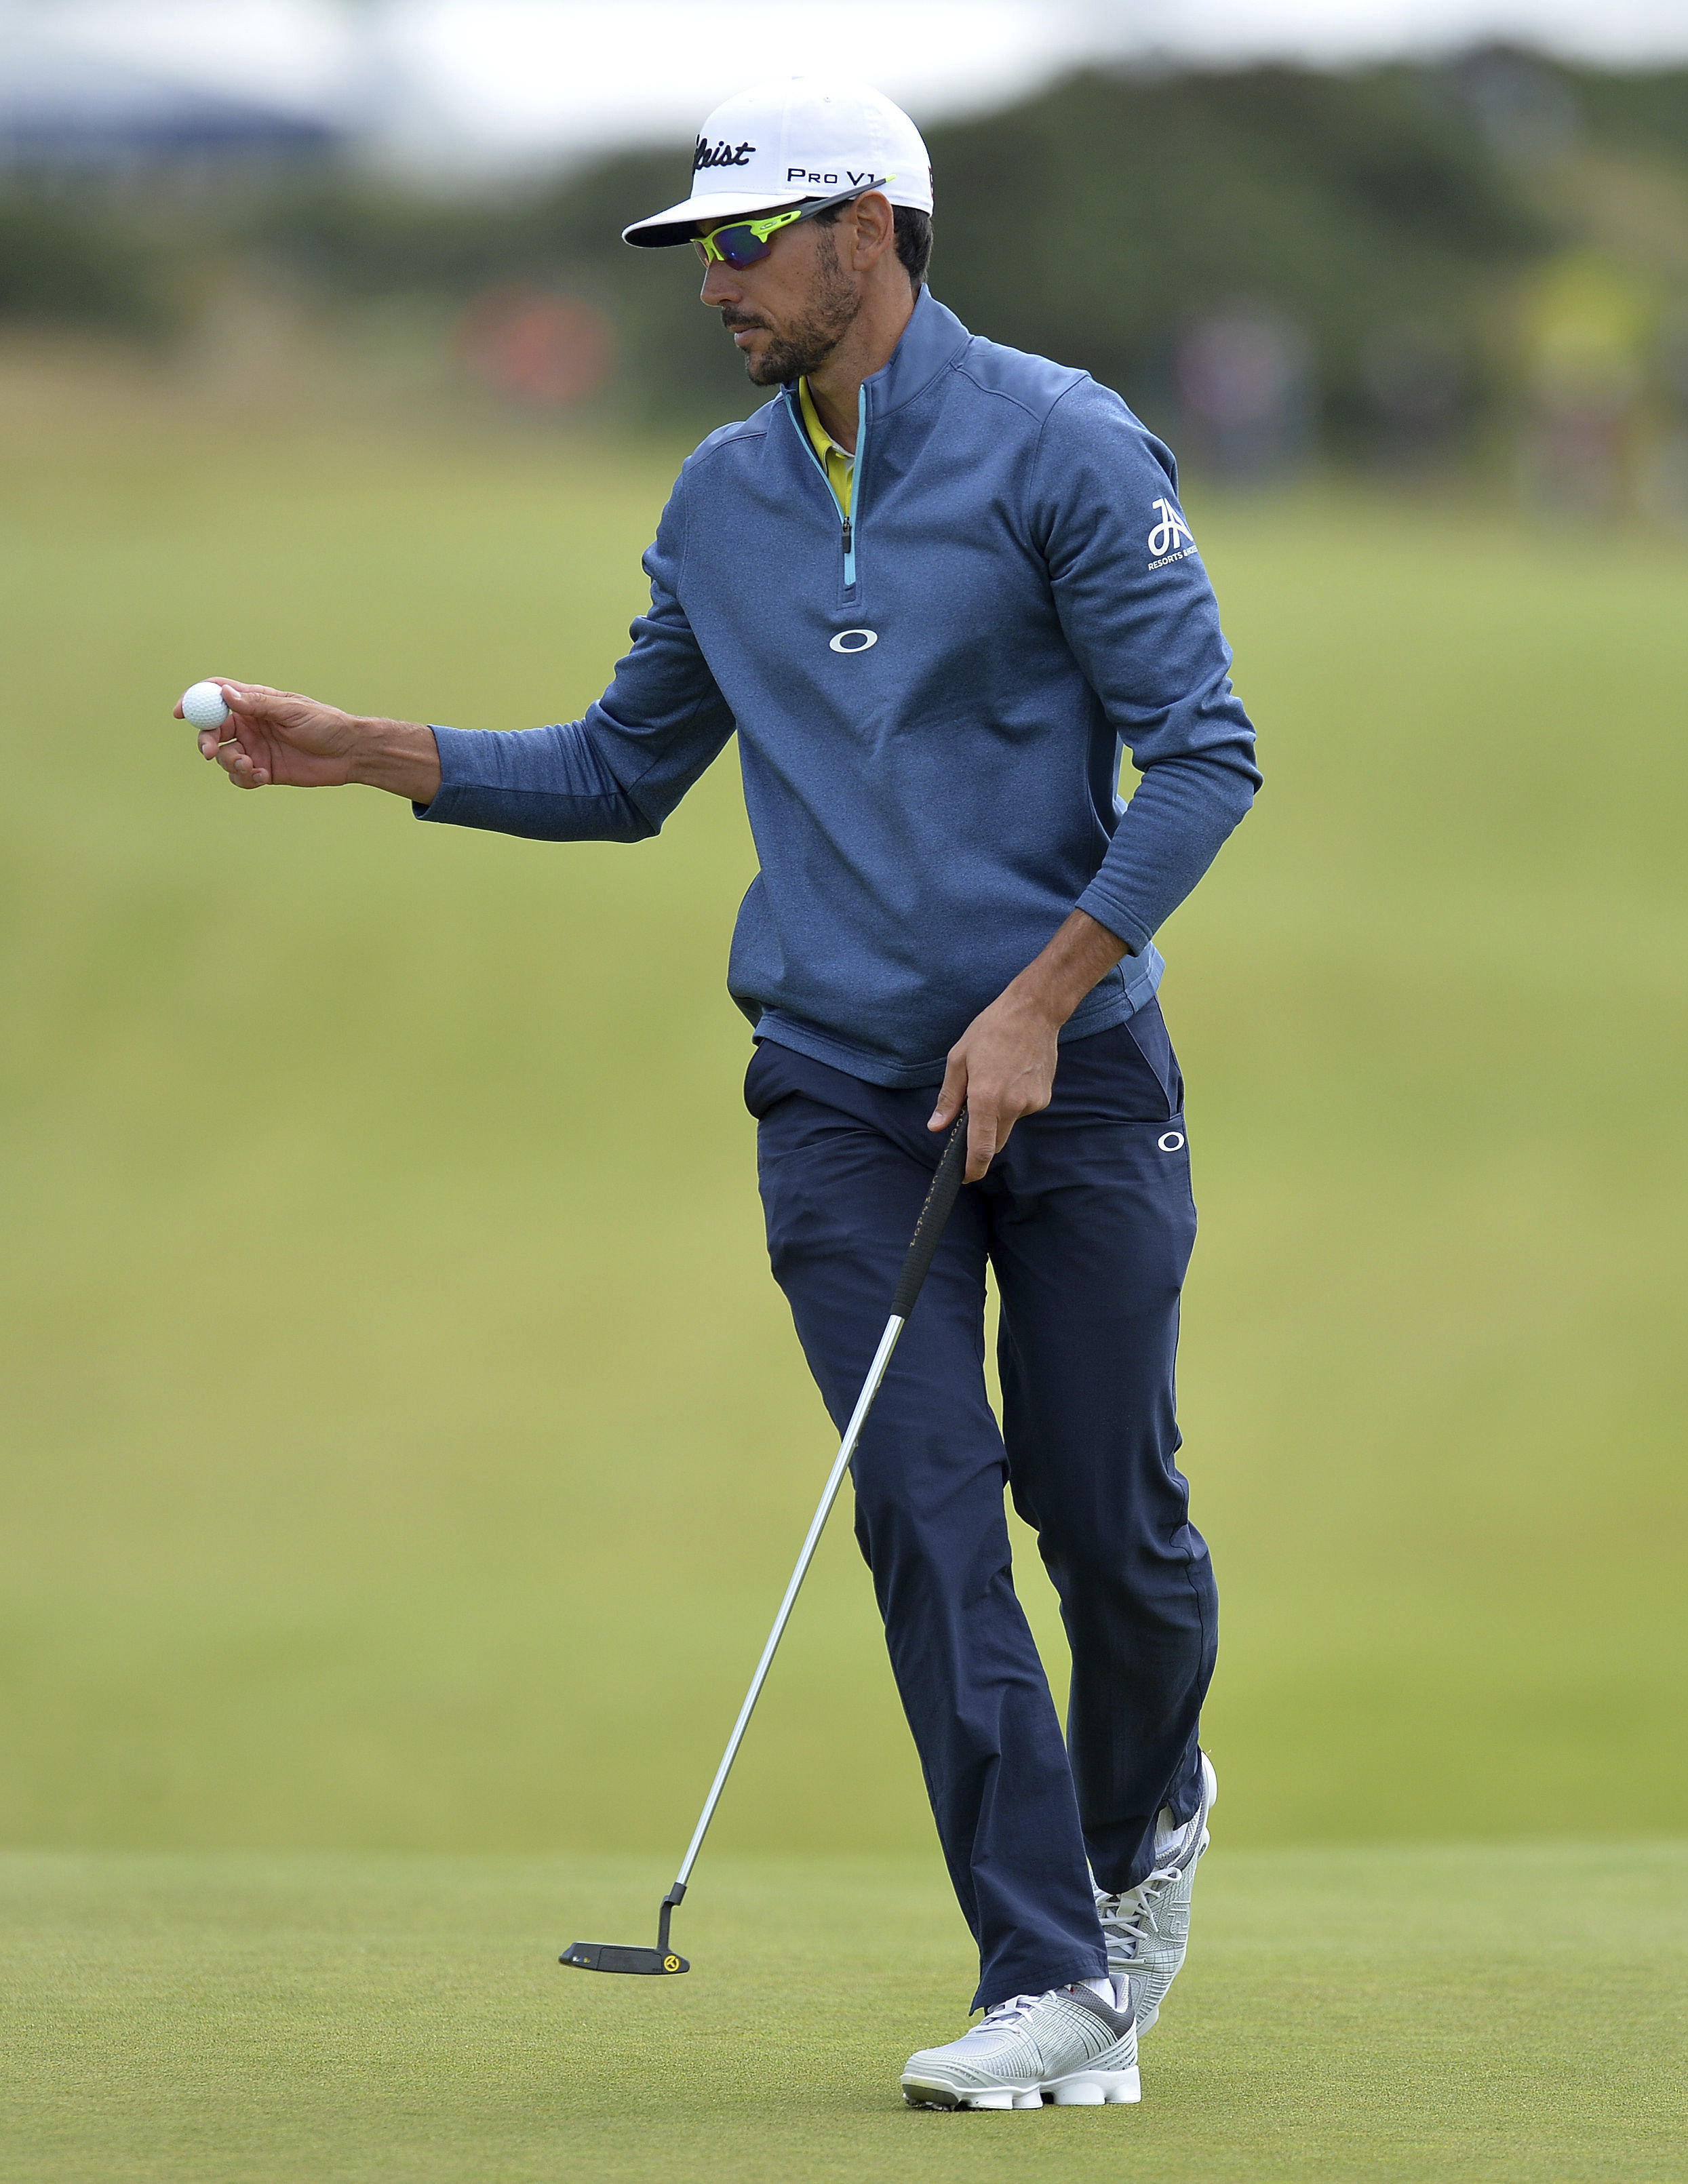 Rafa Cabrera Bello of Spain after putting on the 1st hole during day four of the Scottish Open at Dundonald Links, Troon, Scotland, Sunday July 16, 2017. (Mark Runnacles/PA via AP)